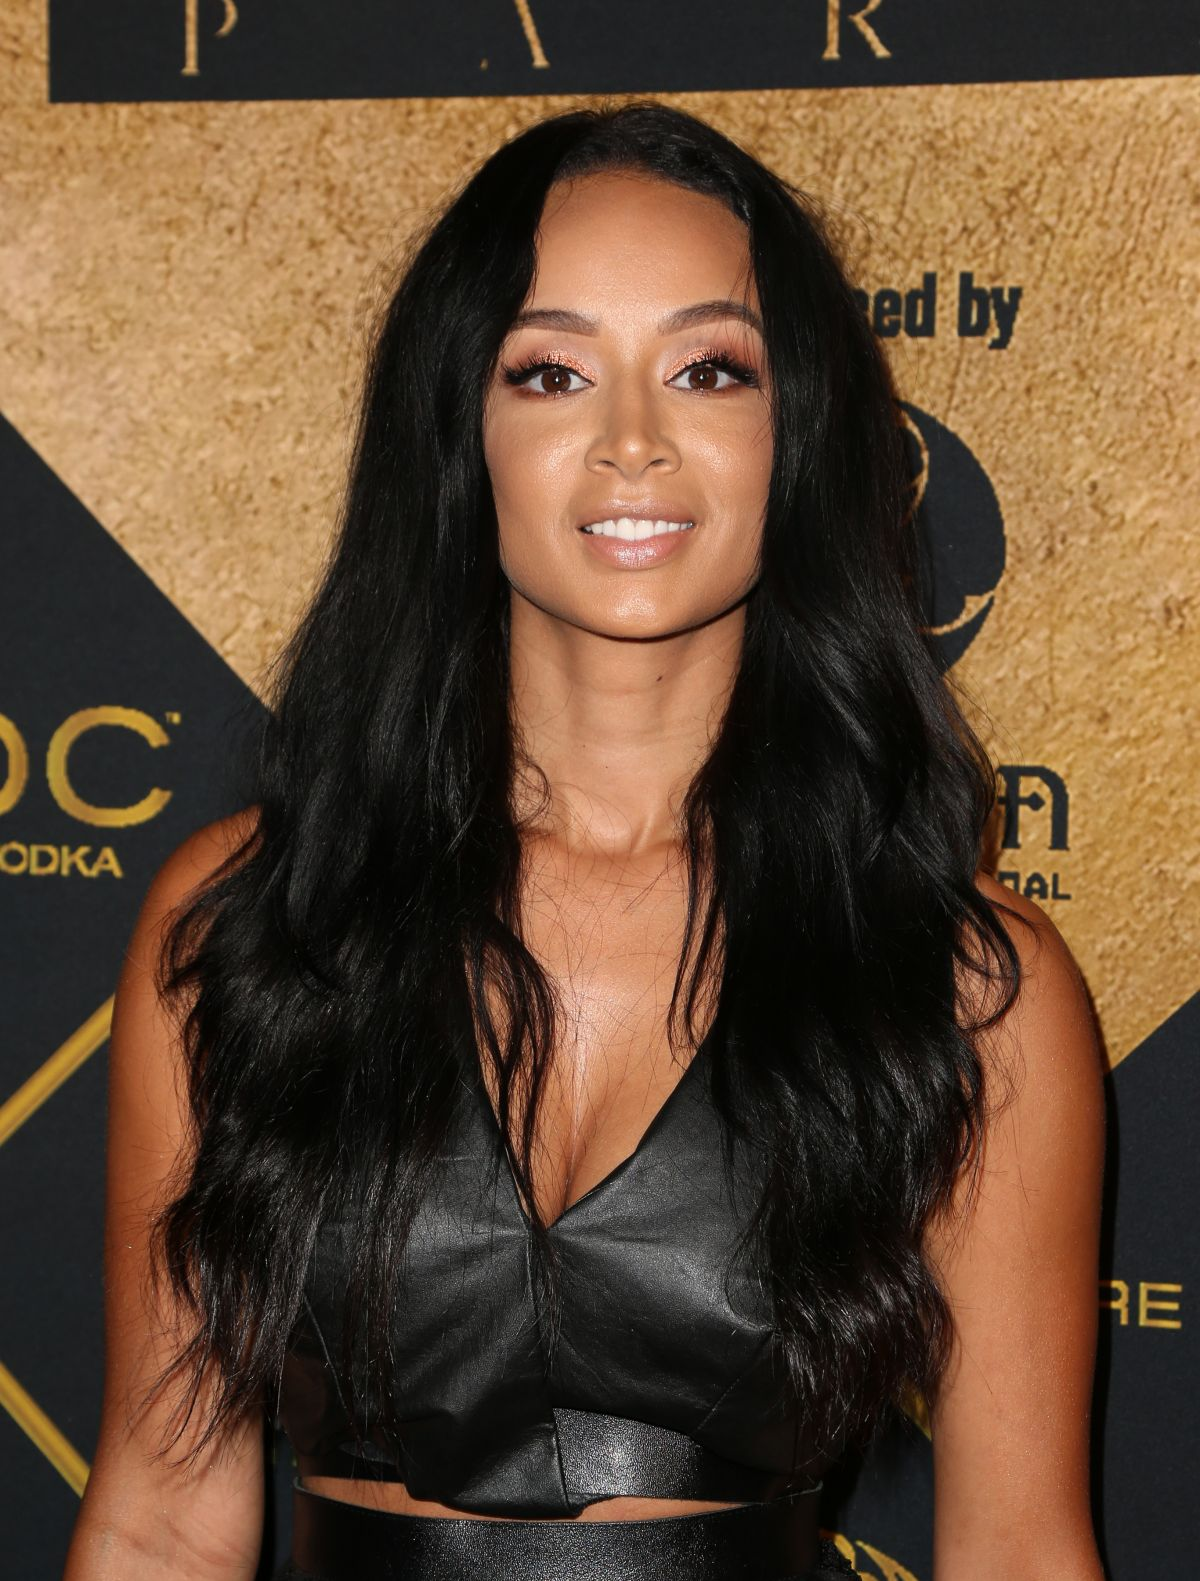 draya michele at 2016 maxim hot 100 party in los angeles 07/30